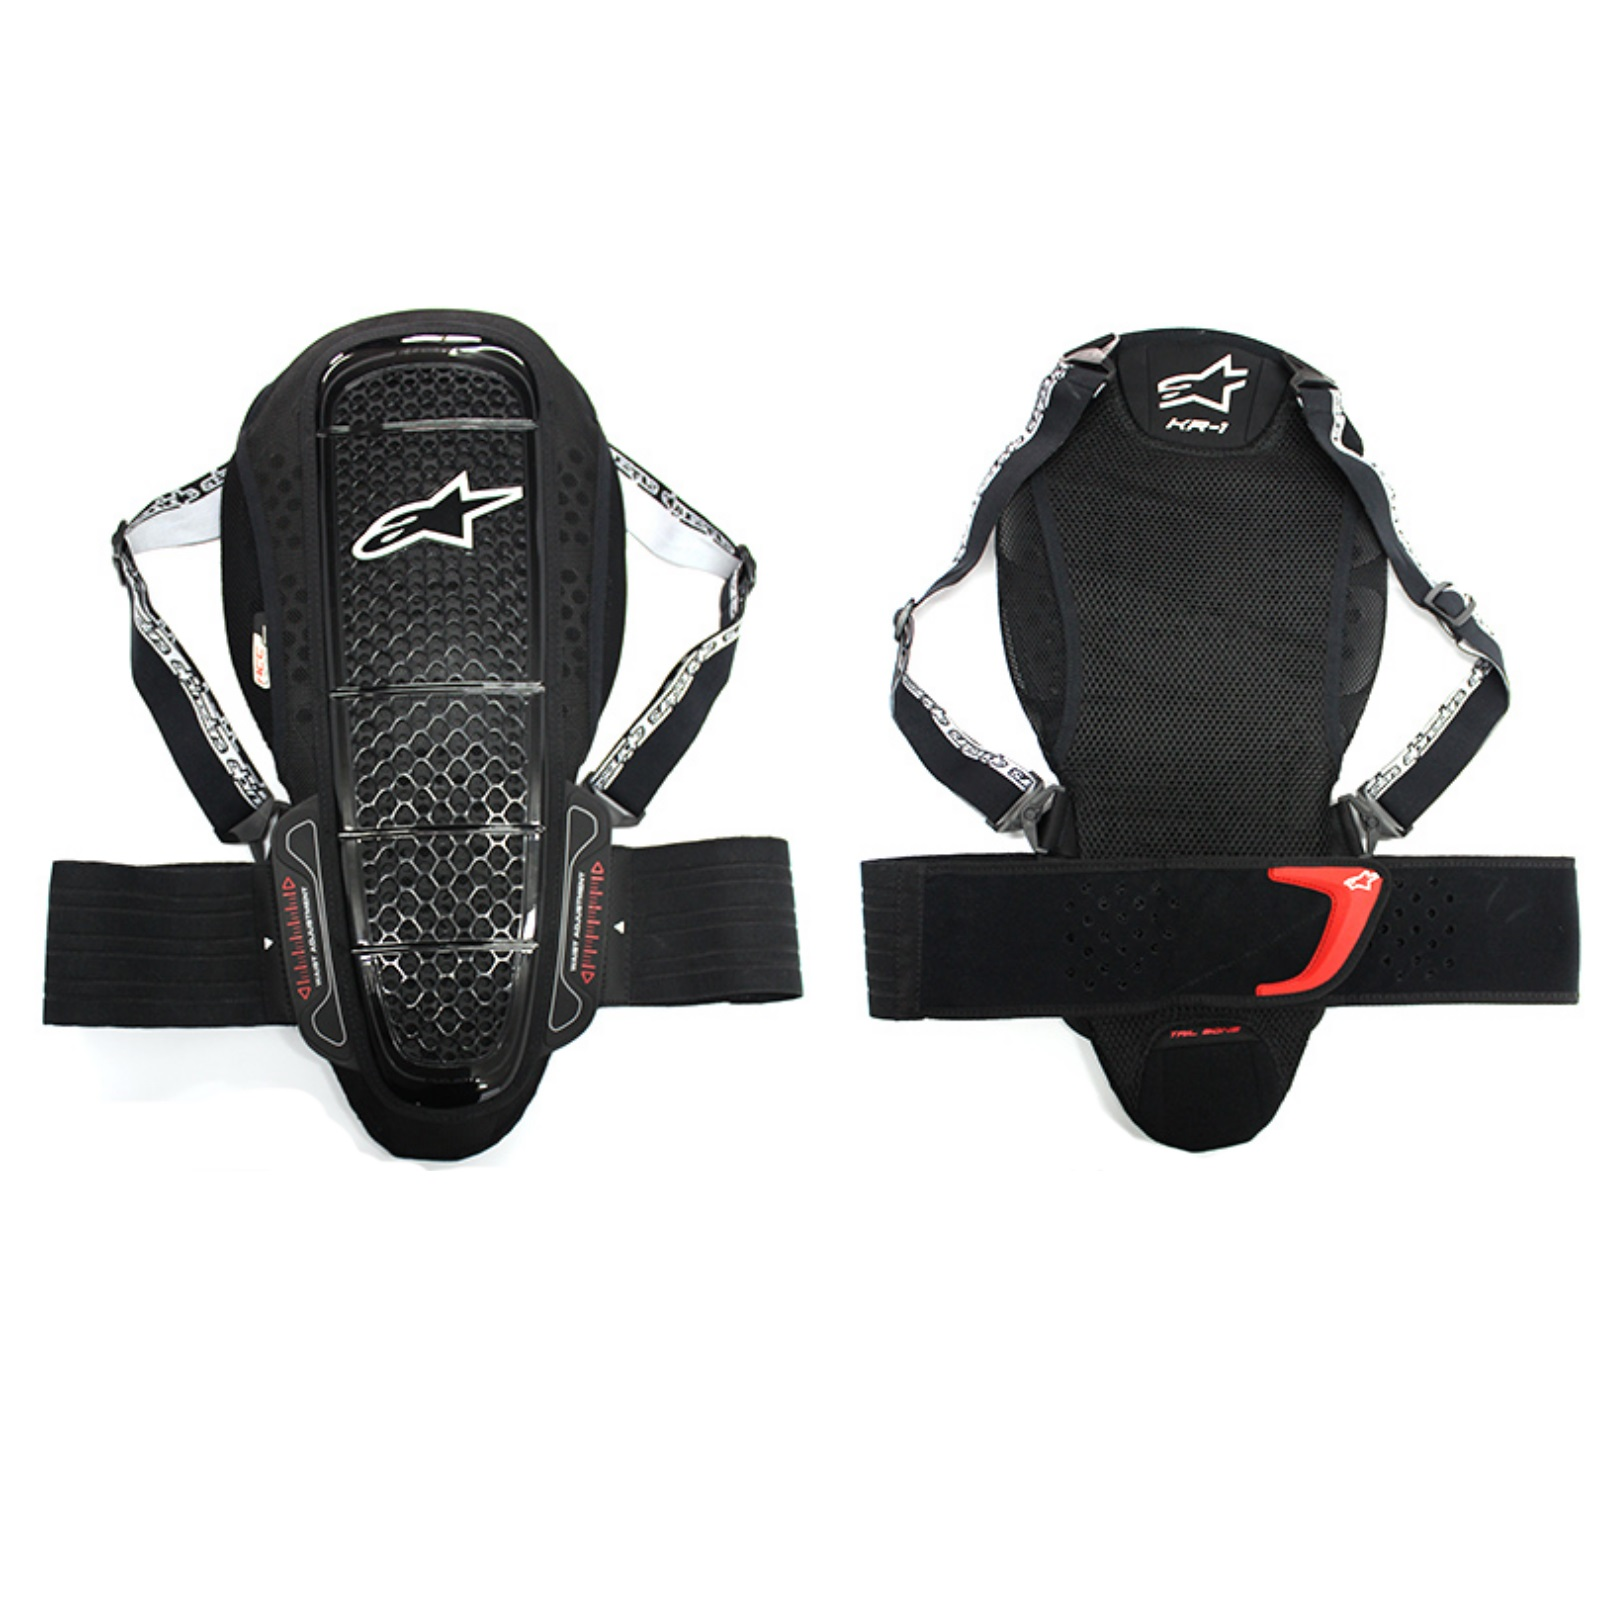 Alpinestars - back protection for motorcyclists